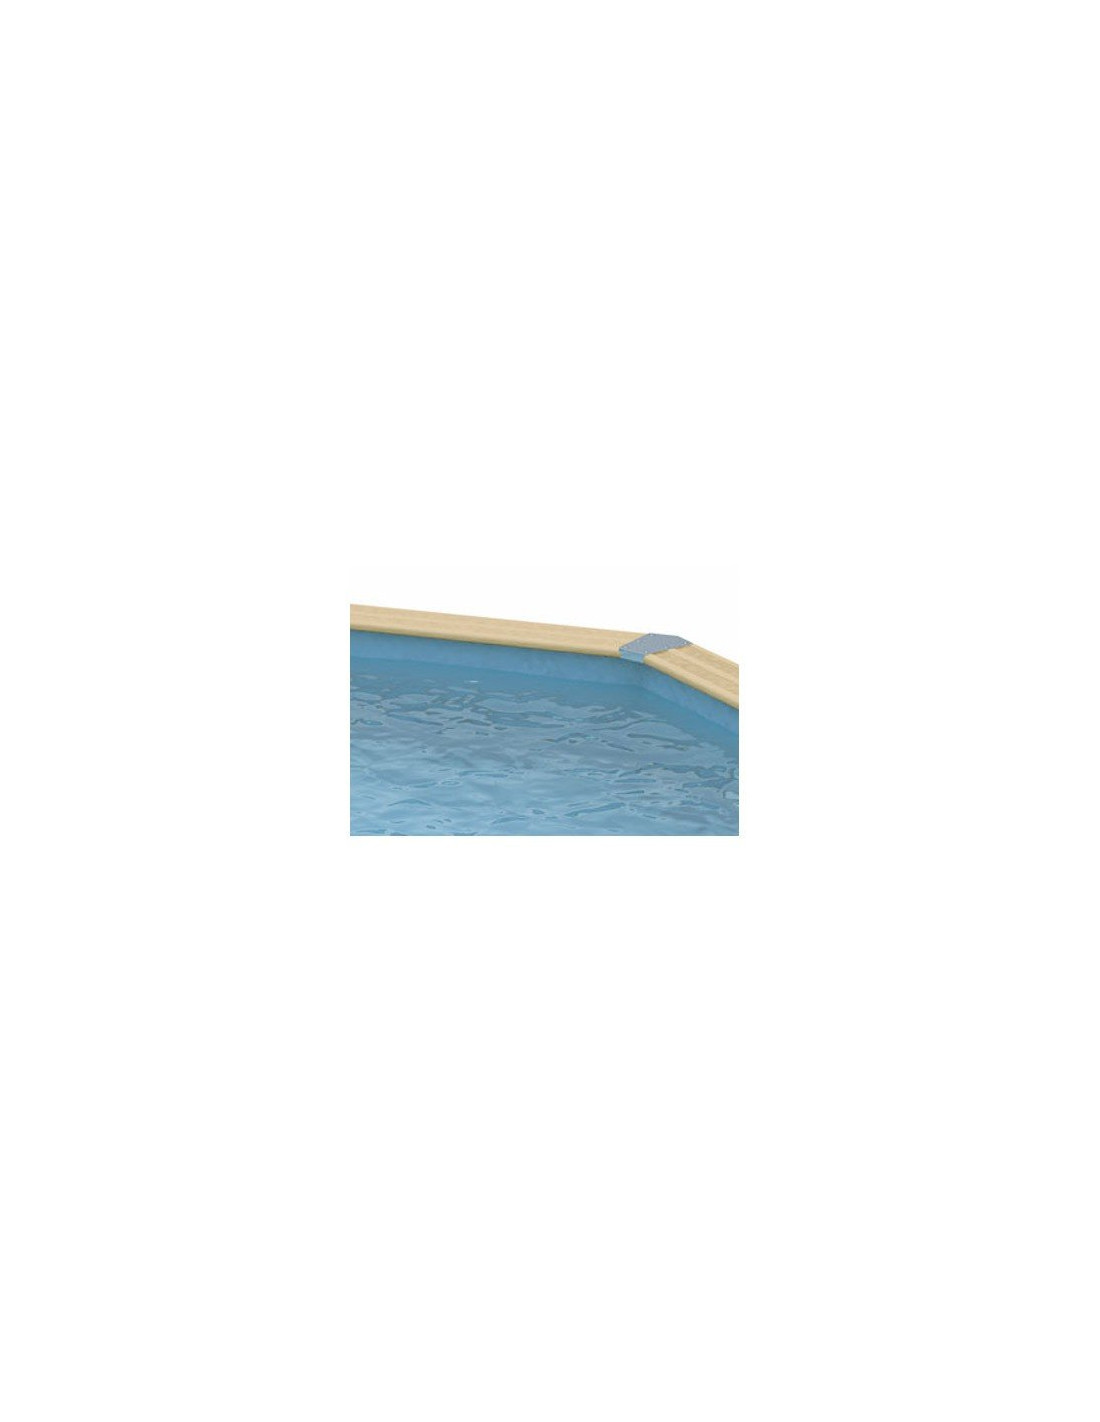 Liner piscine hors sol ovale ubbink ou nortland couleur for Liner couleur sable piscine